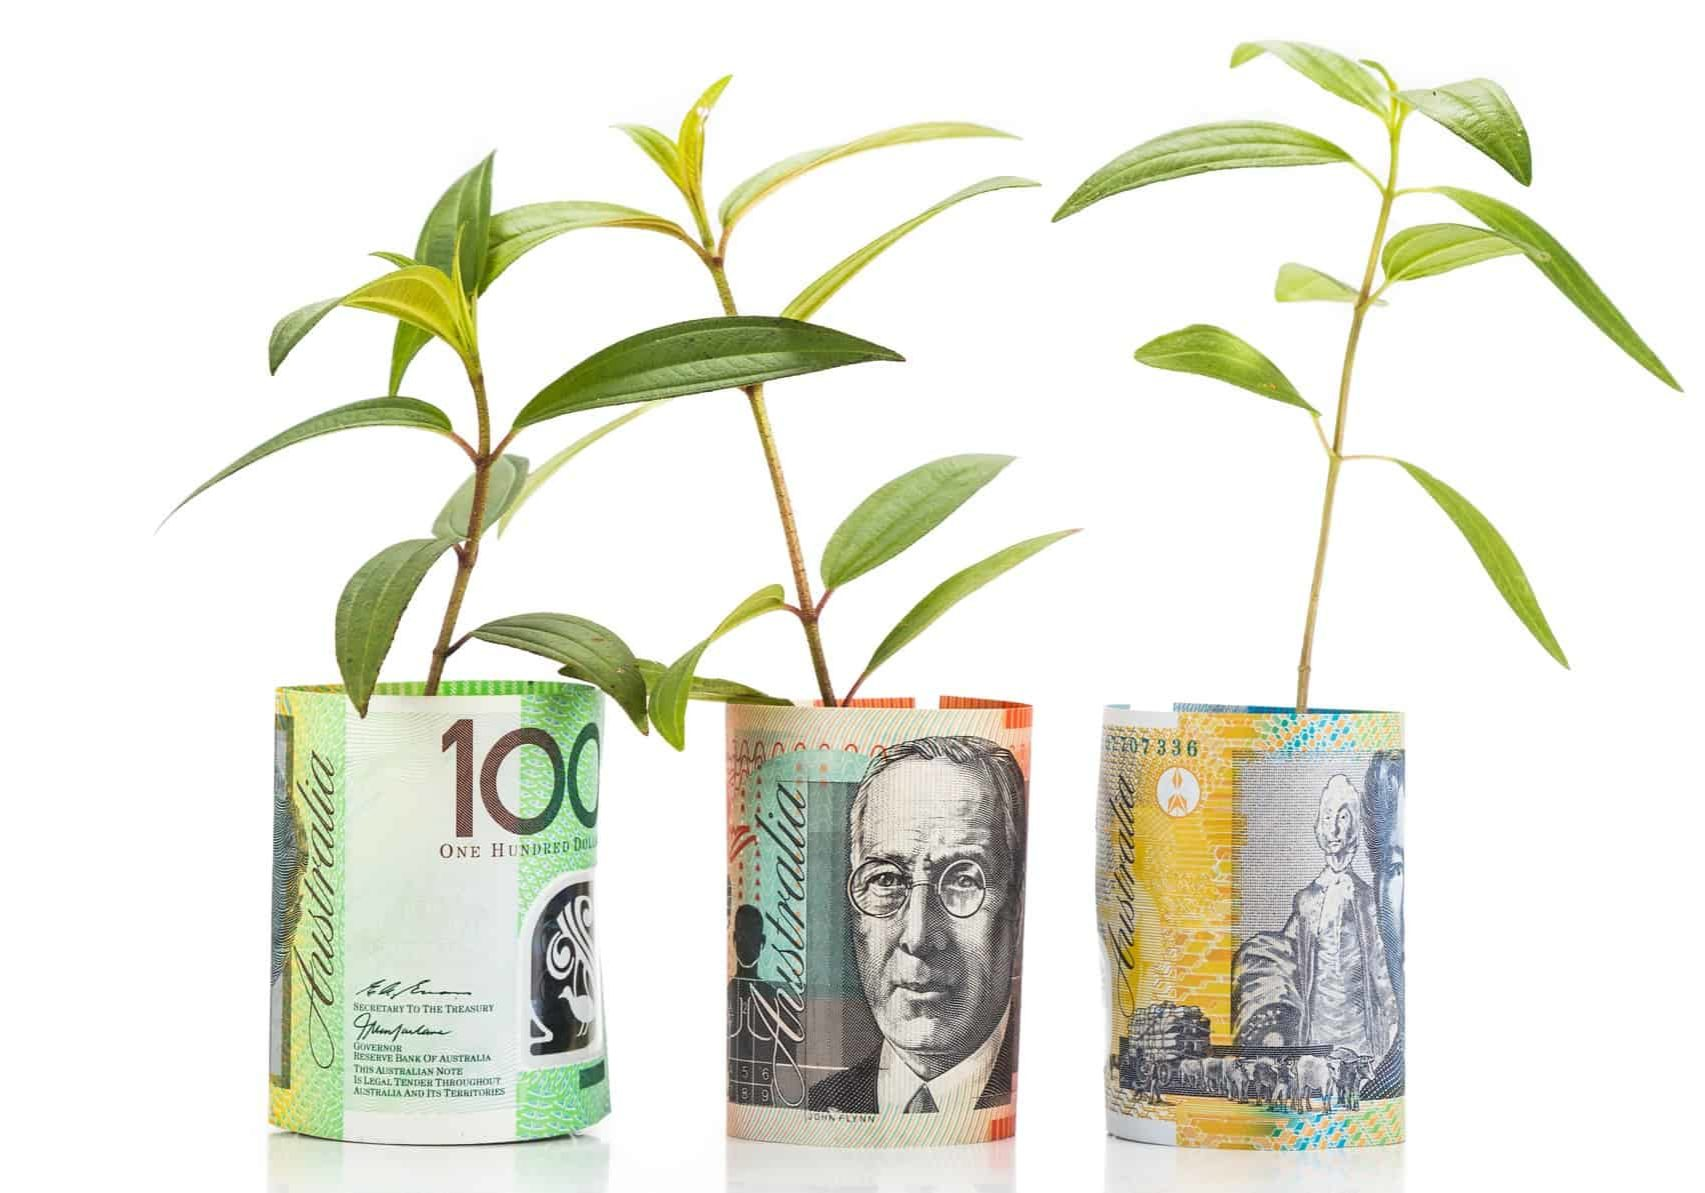 seedling plants growing out of rolls of money representing growth shares